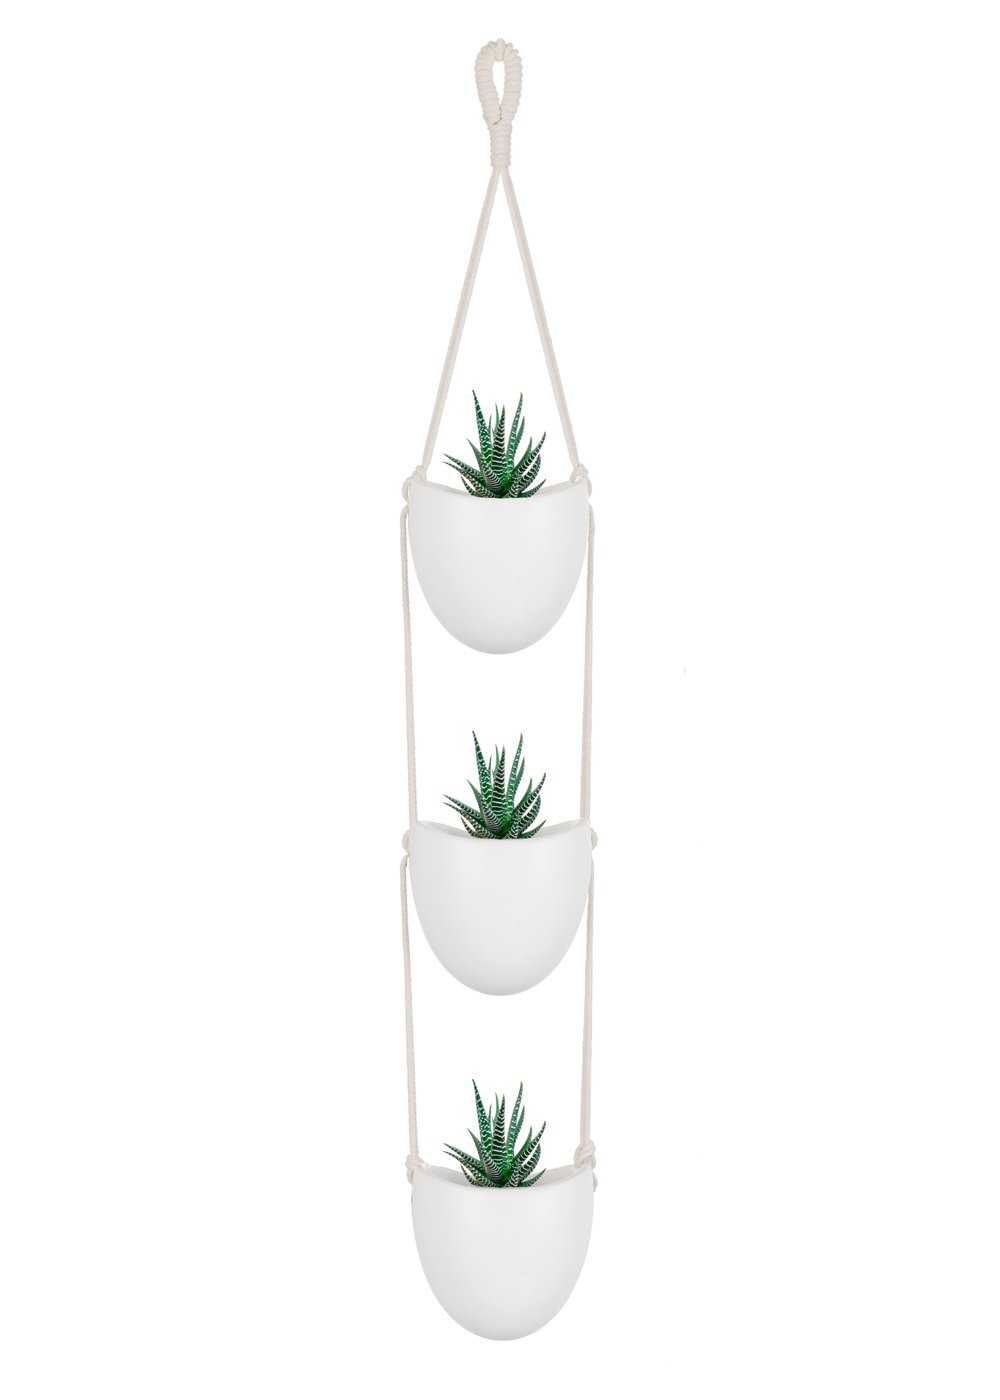 Mkouo Ceramic Hanging Planter with 3 Flower Pots Succulent Air Plant Holder Wall Decor